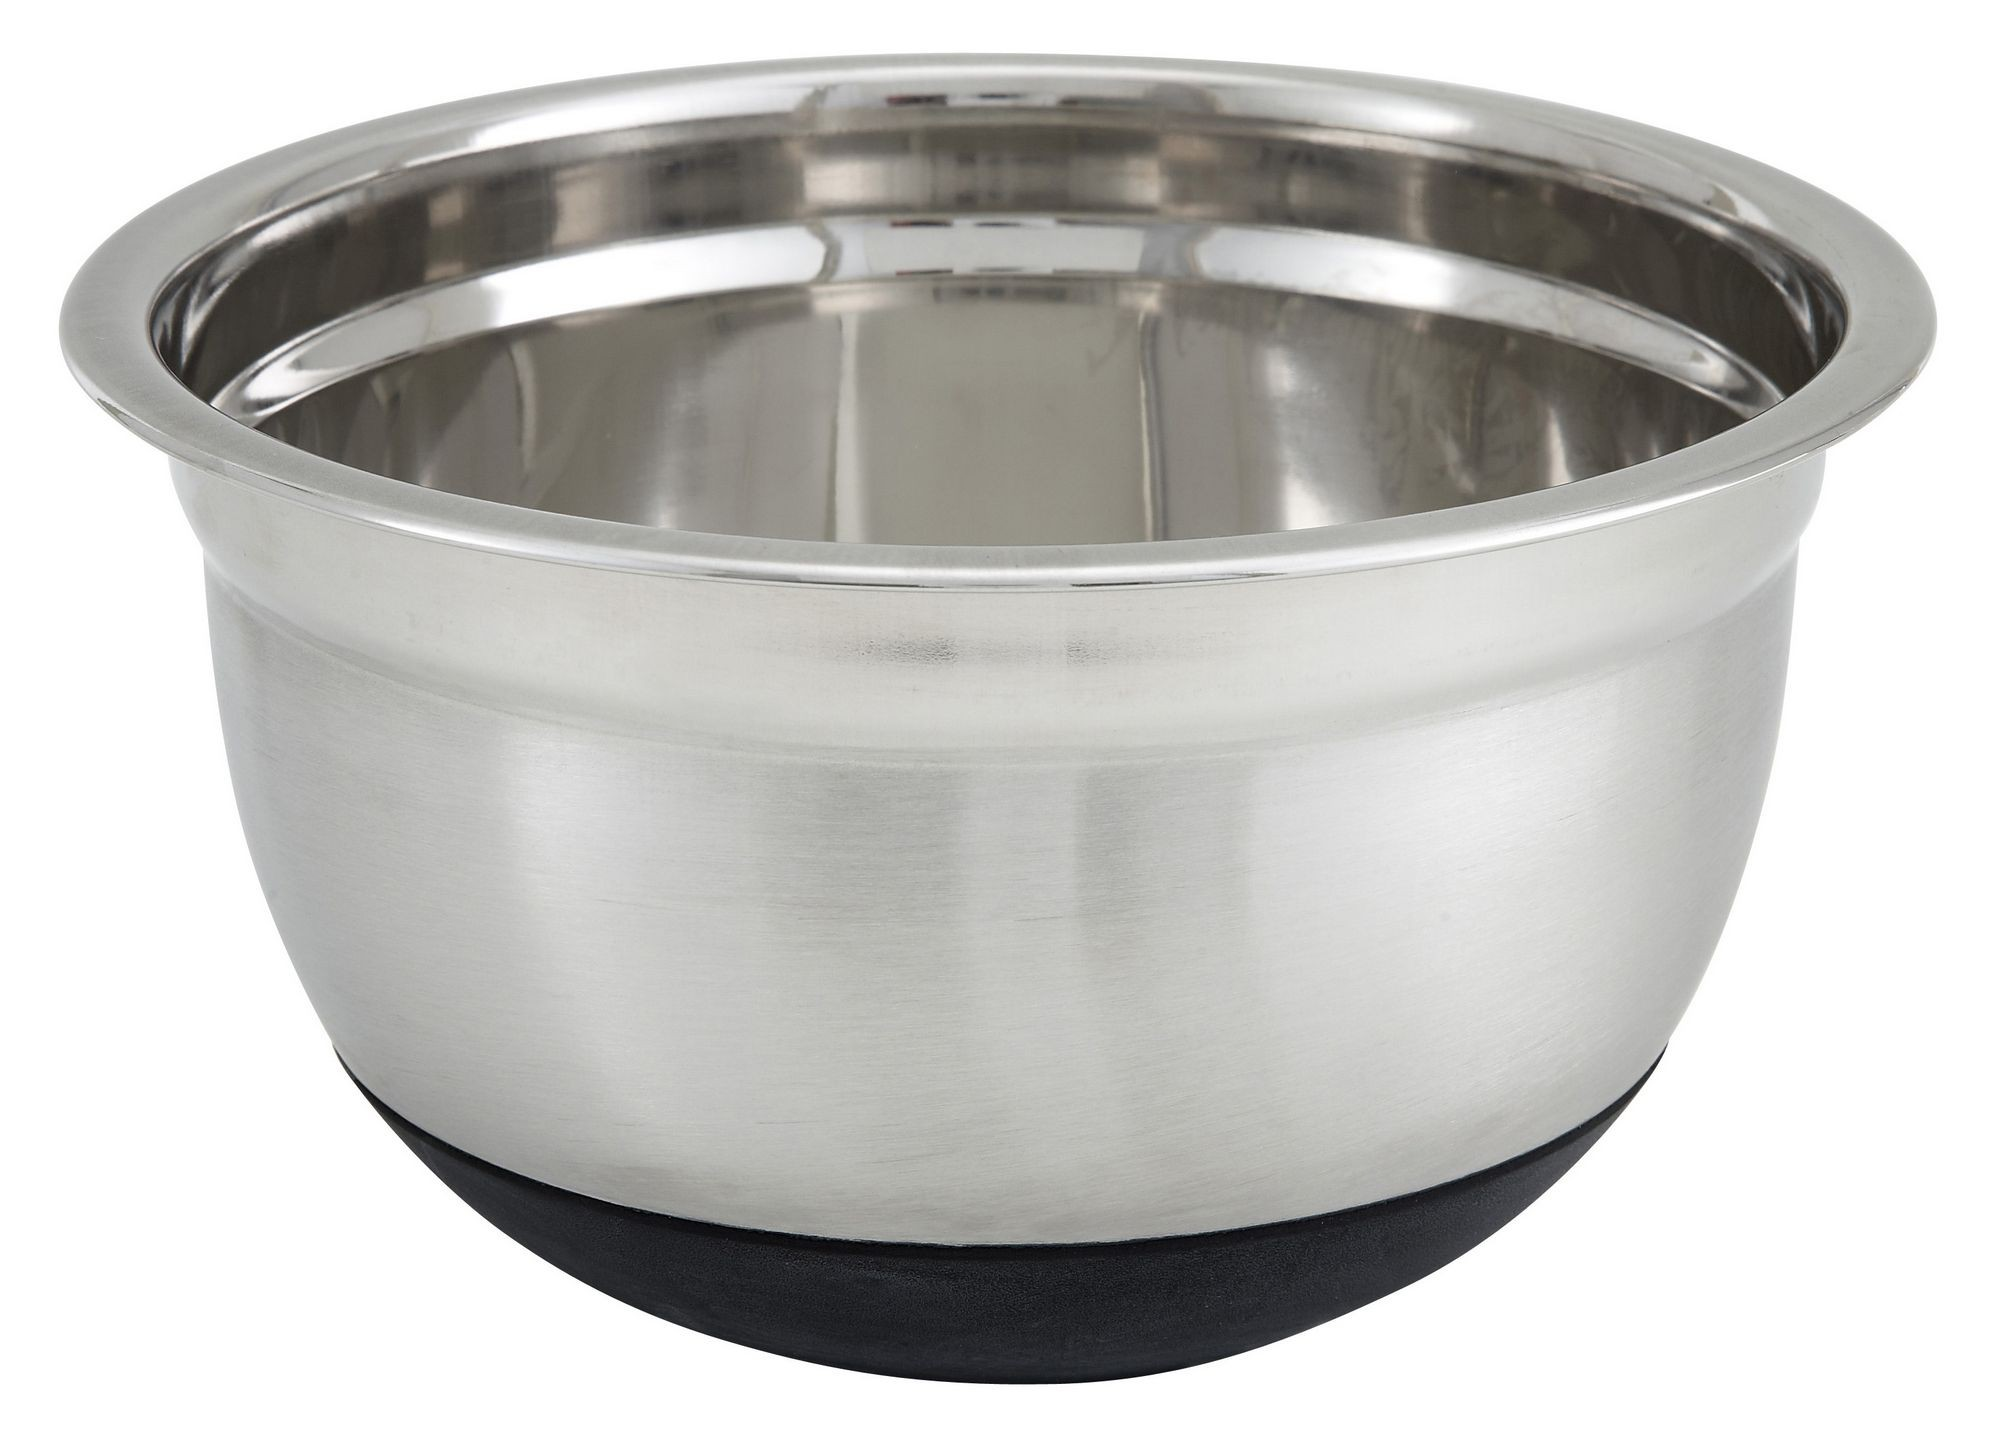 Winco MXRU-300 German Mixing Bowl 3 Qt. with Silicone Base